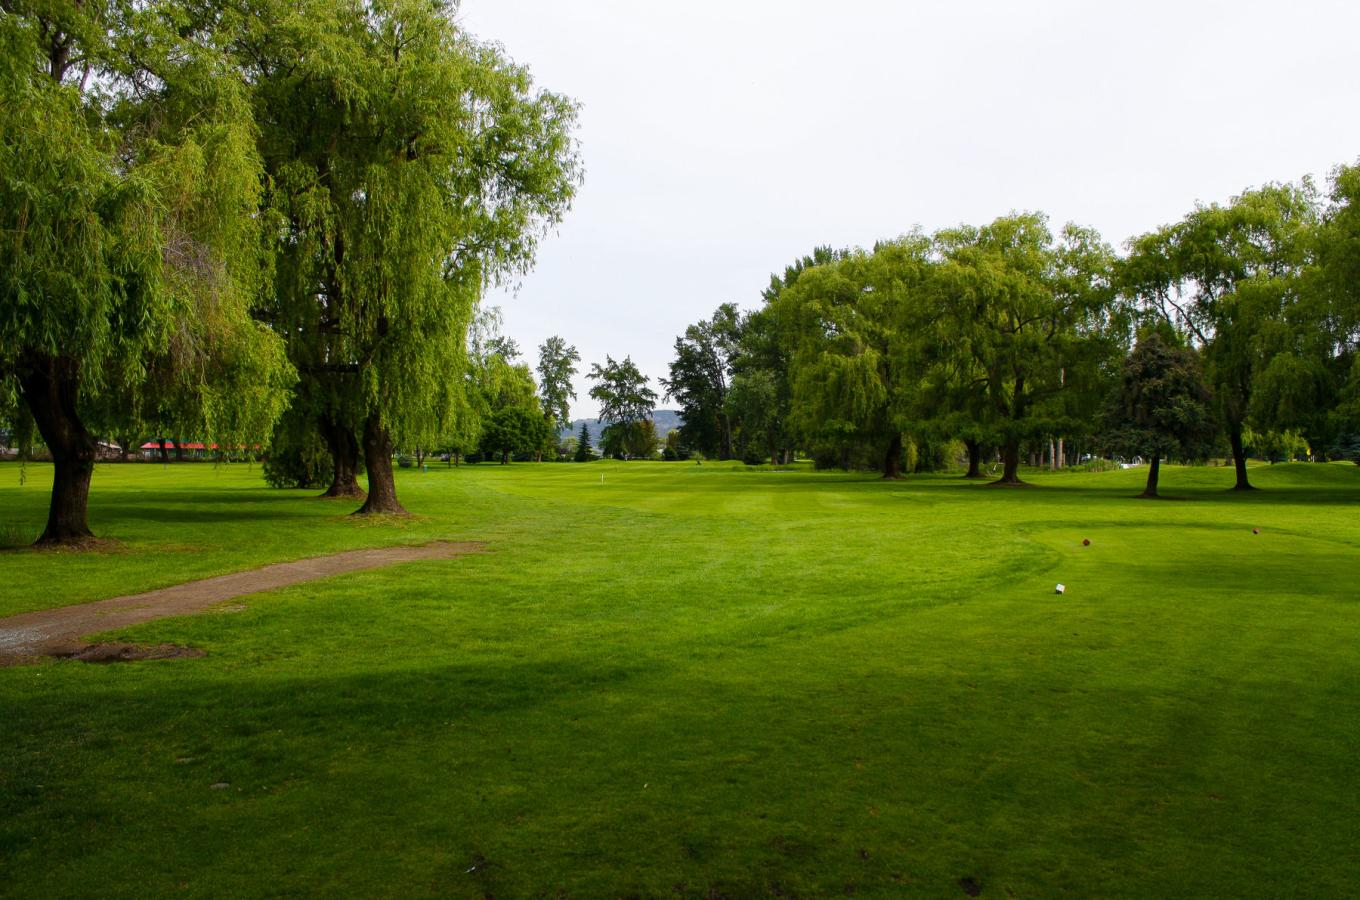 Mission Creek Golf Course Image 1